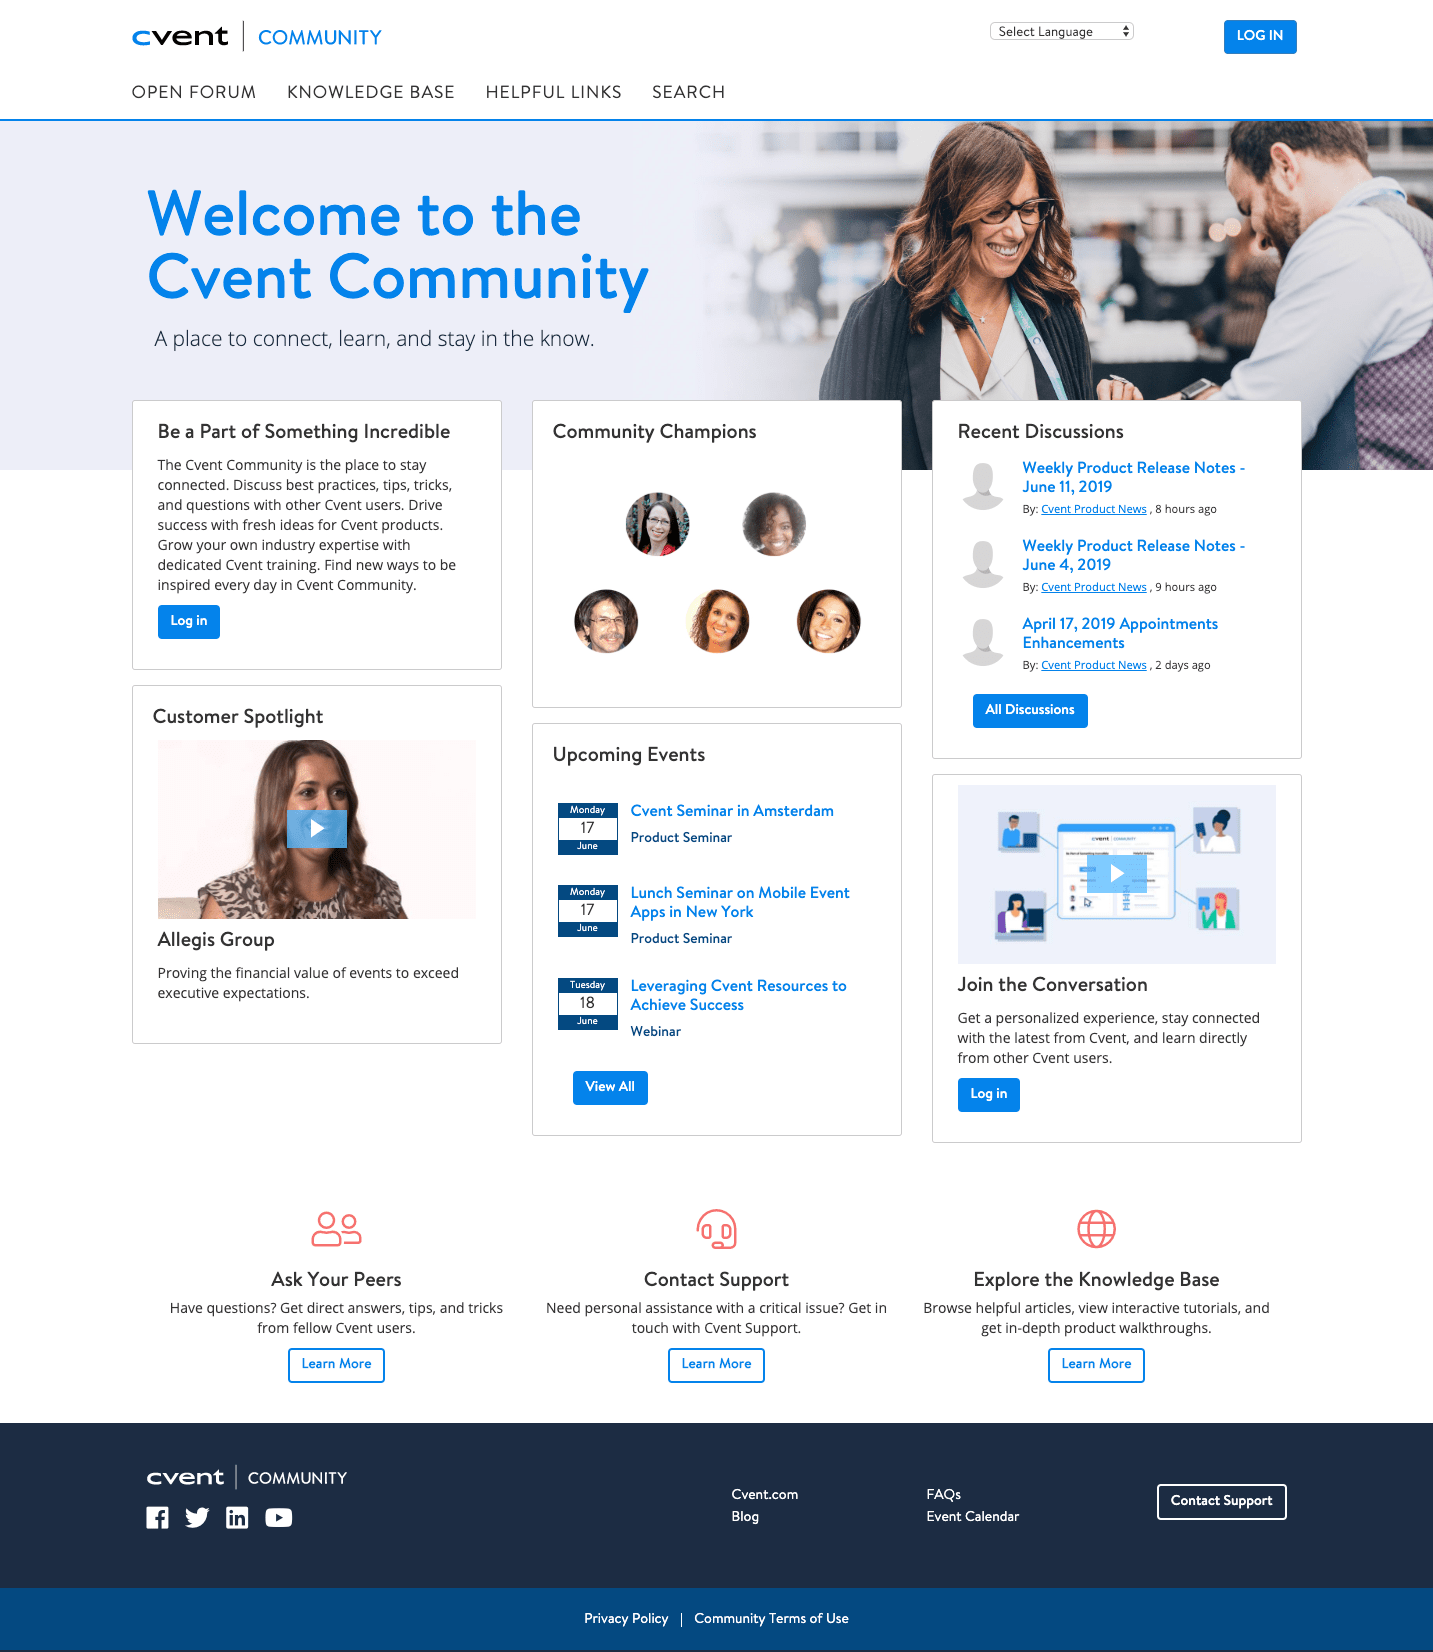 Connect, learn, and stay in the know with the Cvent Community